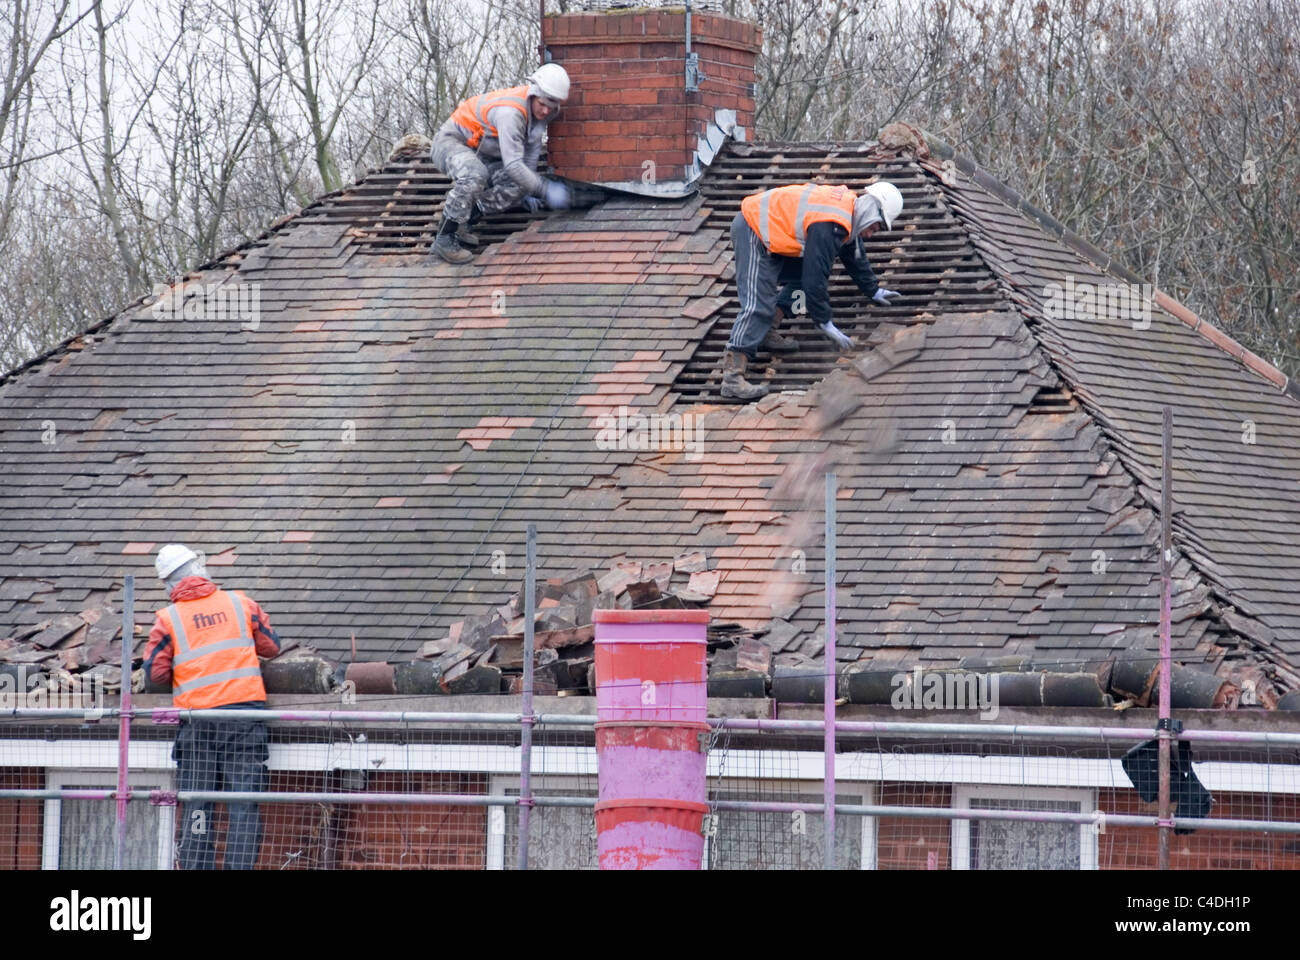 https://i0.wp.com/c8.alamy.com/comp/C4DH1P/three-men-roof-of-house-roof-stripping-off-old-tiles-re-roofing-acis-C4DH1P.jpg